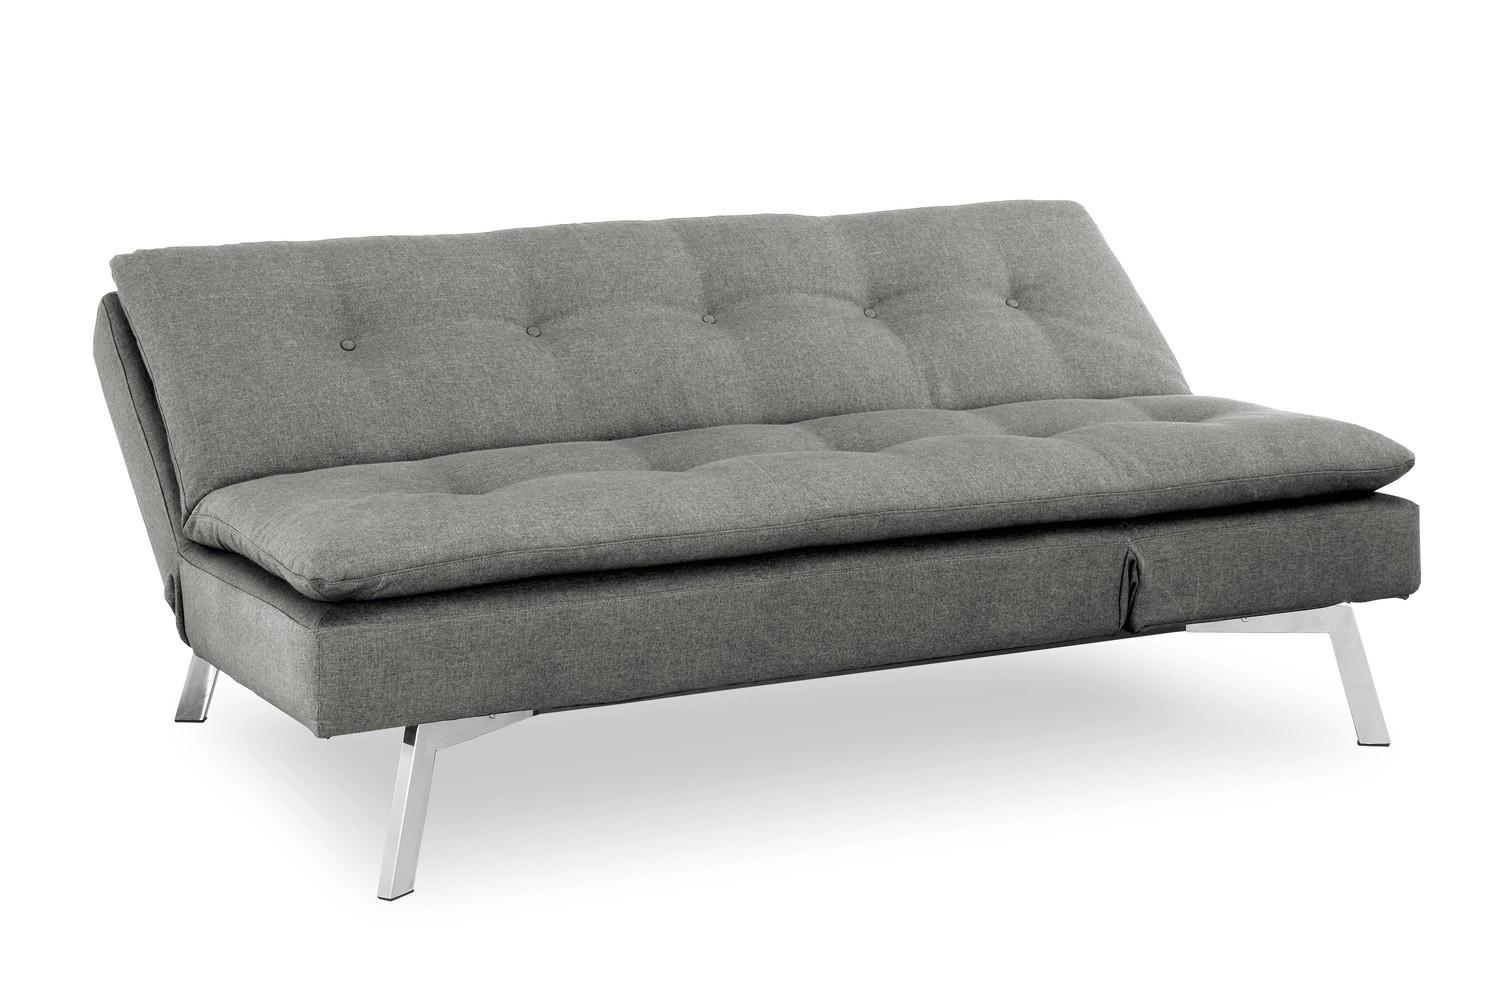 Shelby Sofa Sleeper | Shelby Futon | The Futon Shop With Regard To Cushion Sofa Beds (View 2 of 23)